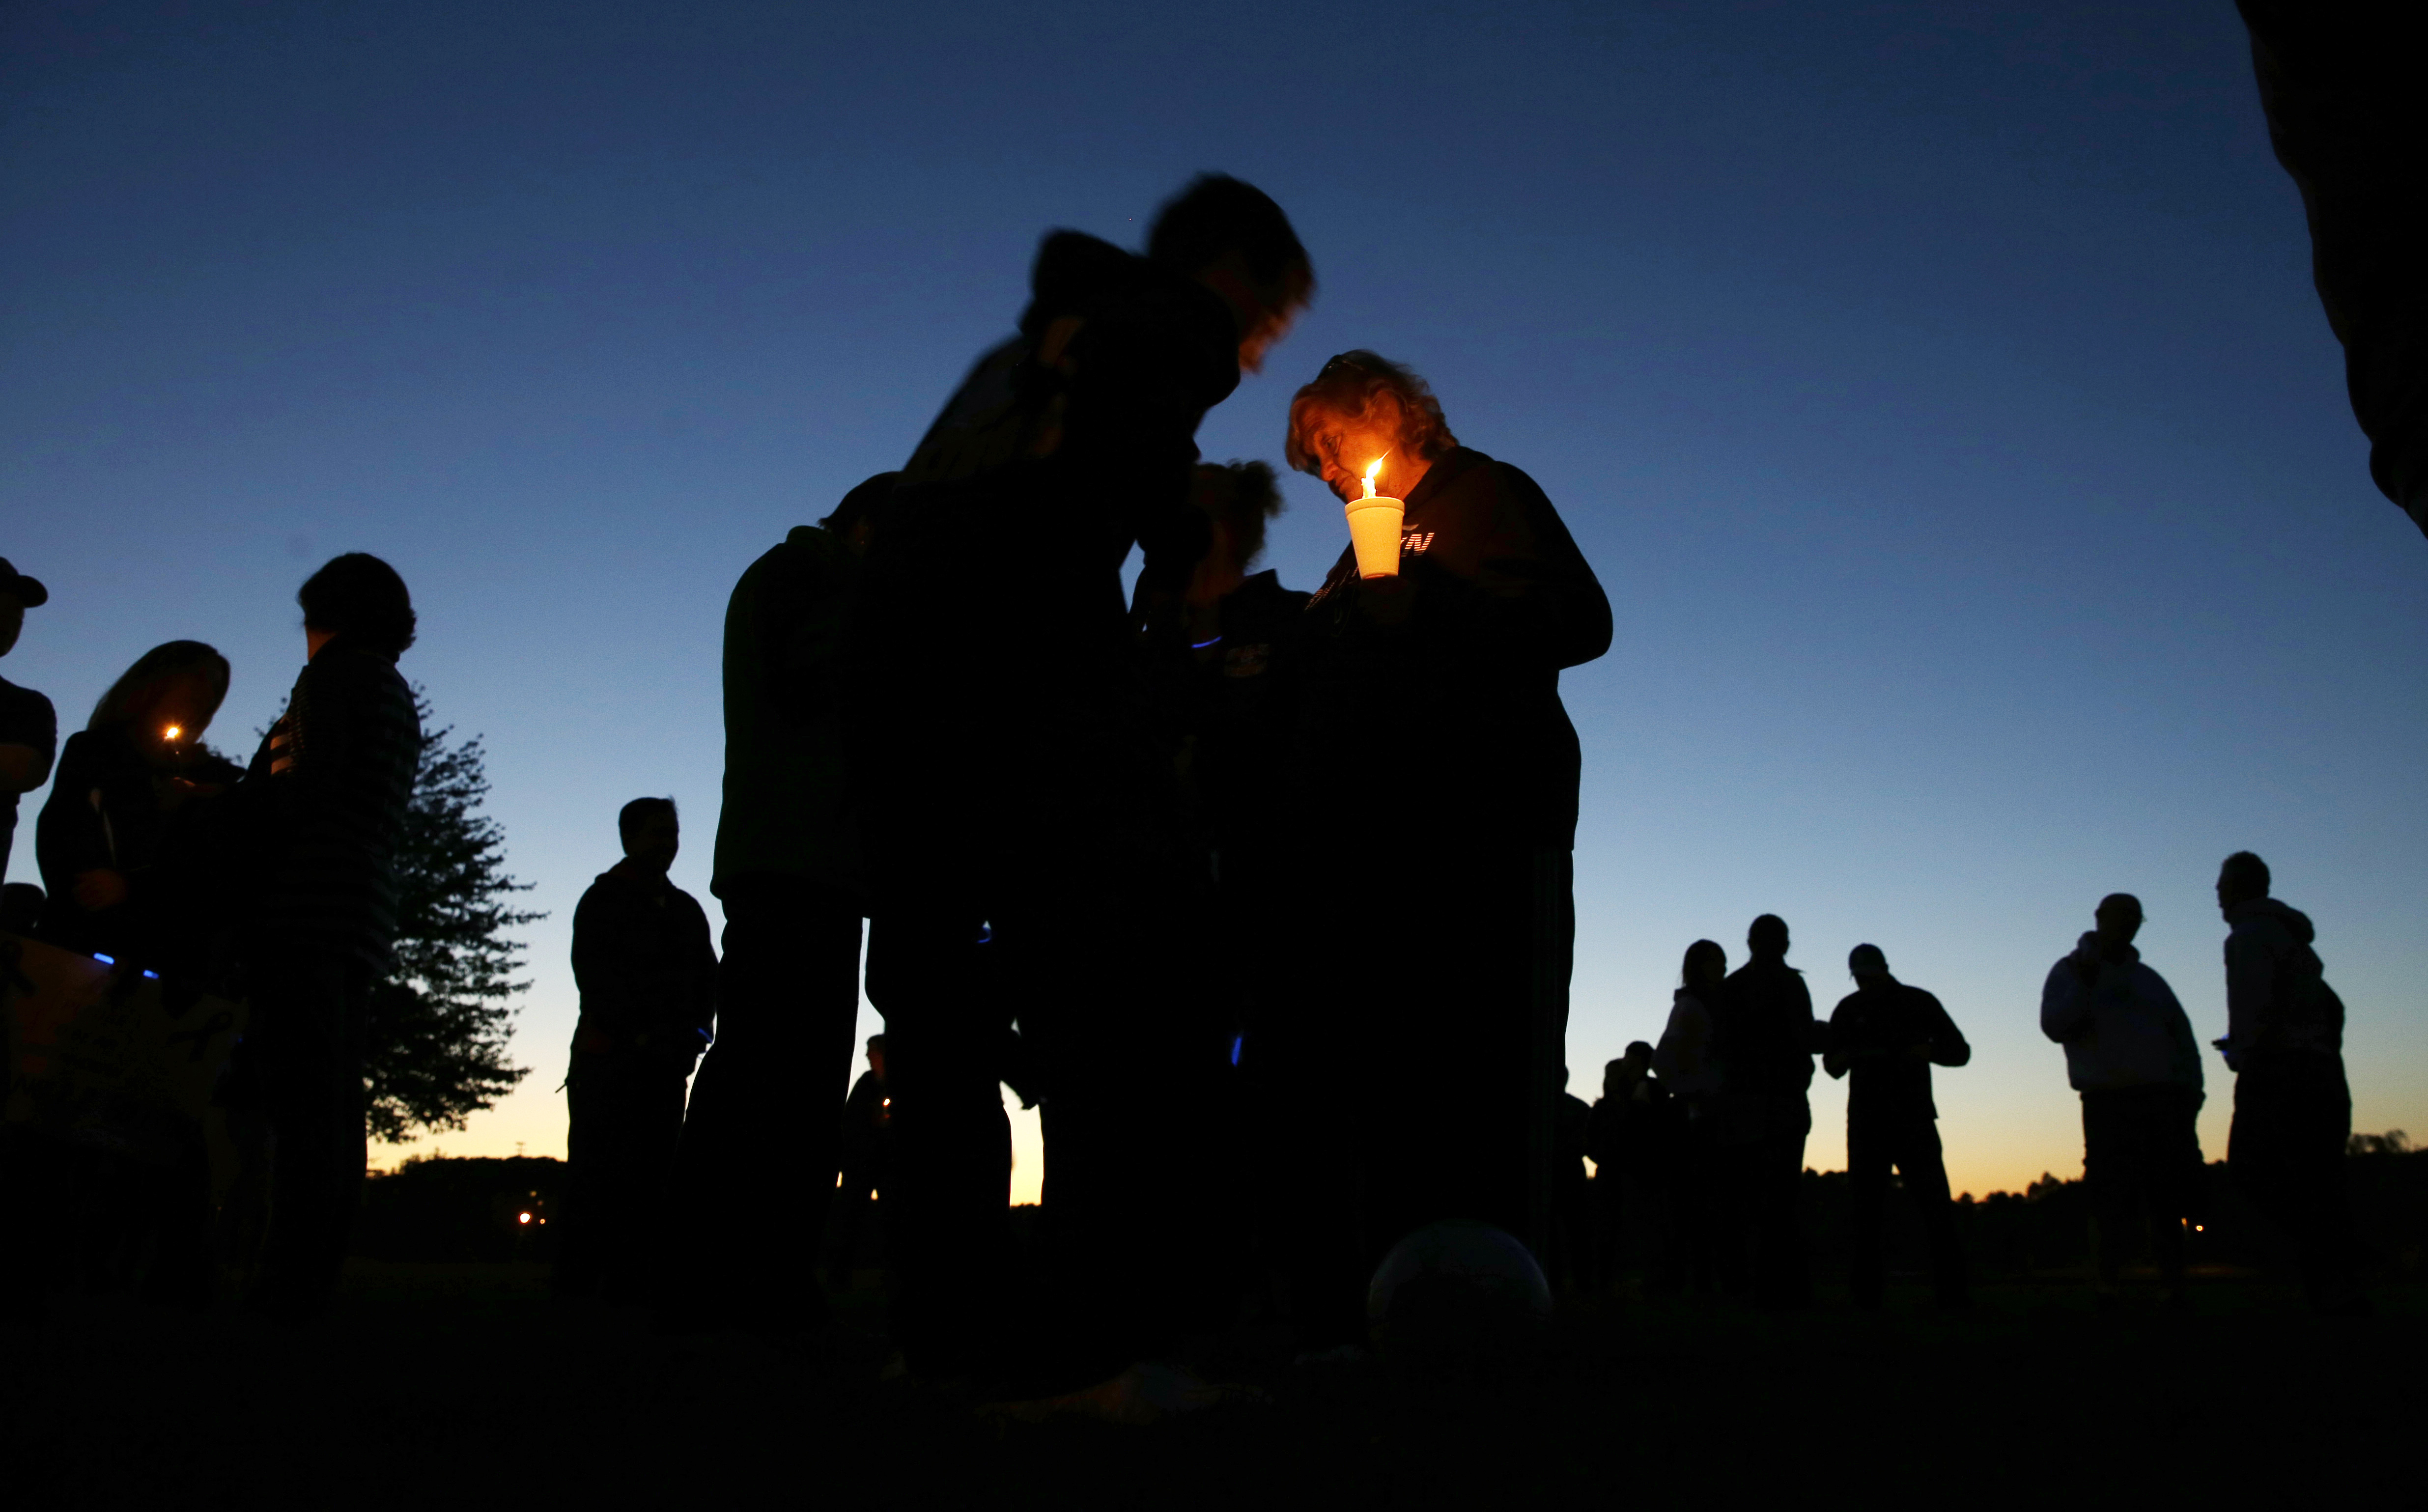 Residents of Sayreville gather for an anti-bullying rally Oct. 12, 2014, in Sayreville, N.J.